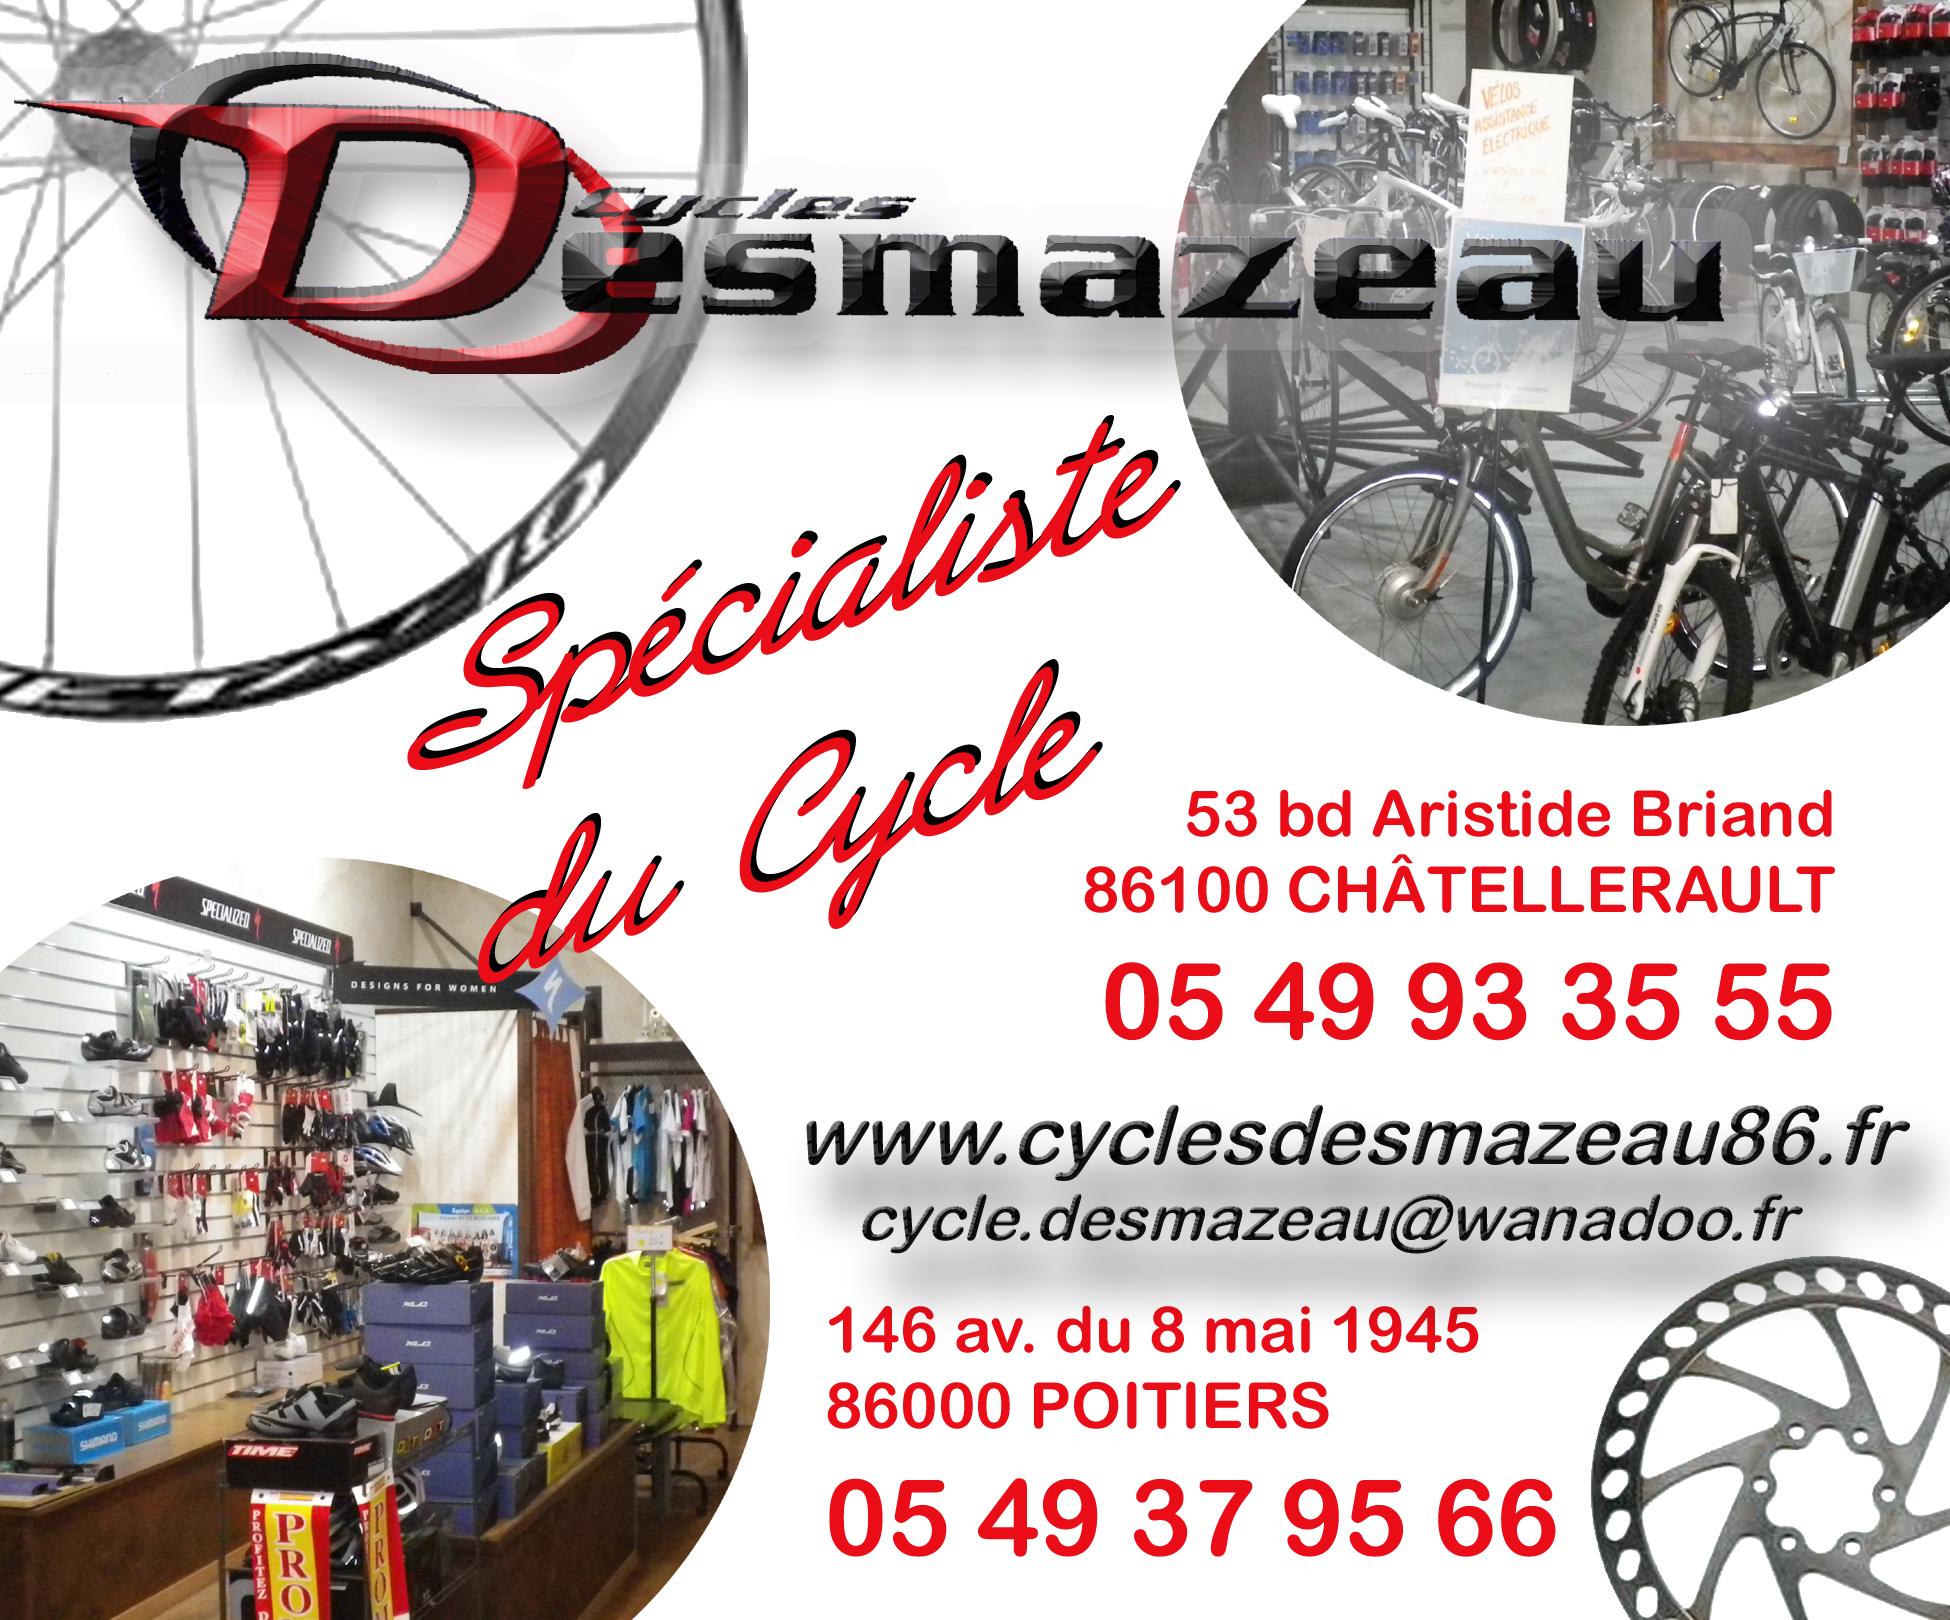 Cycle Desmazeau